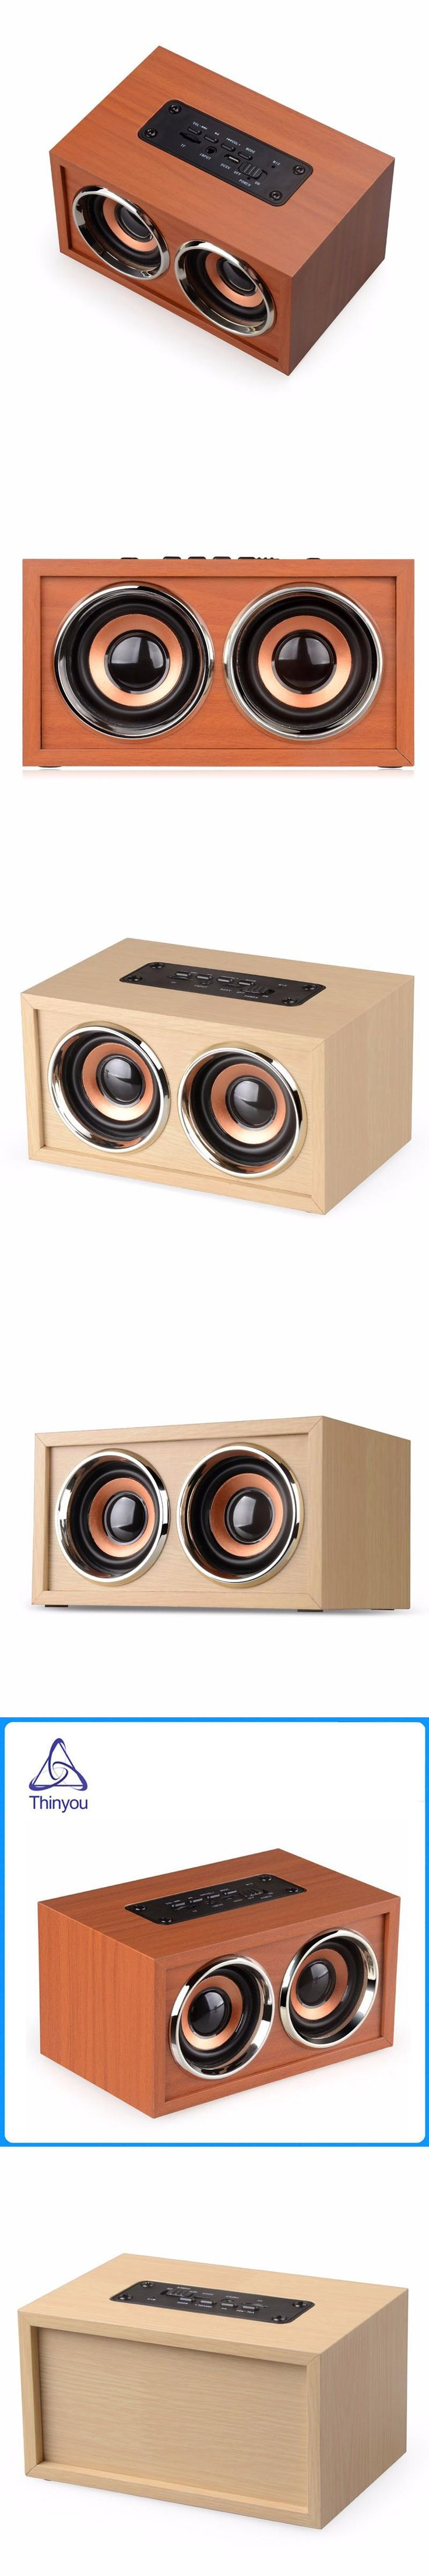 Thinyou Wood Wireless Bluetooth Speaker Portable Computer Speakers 3D Loudspeakers for TV Home Theatre Sound Bar AUX